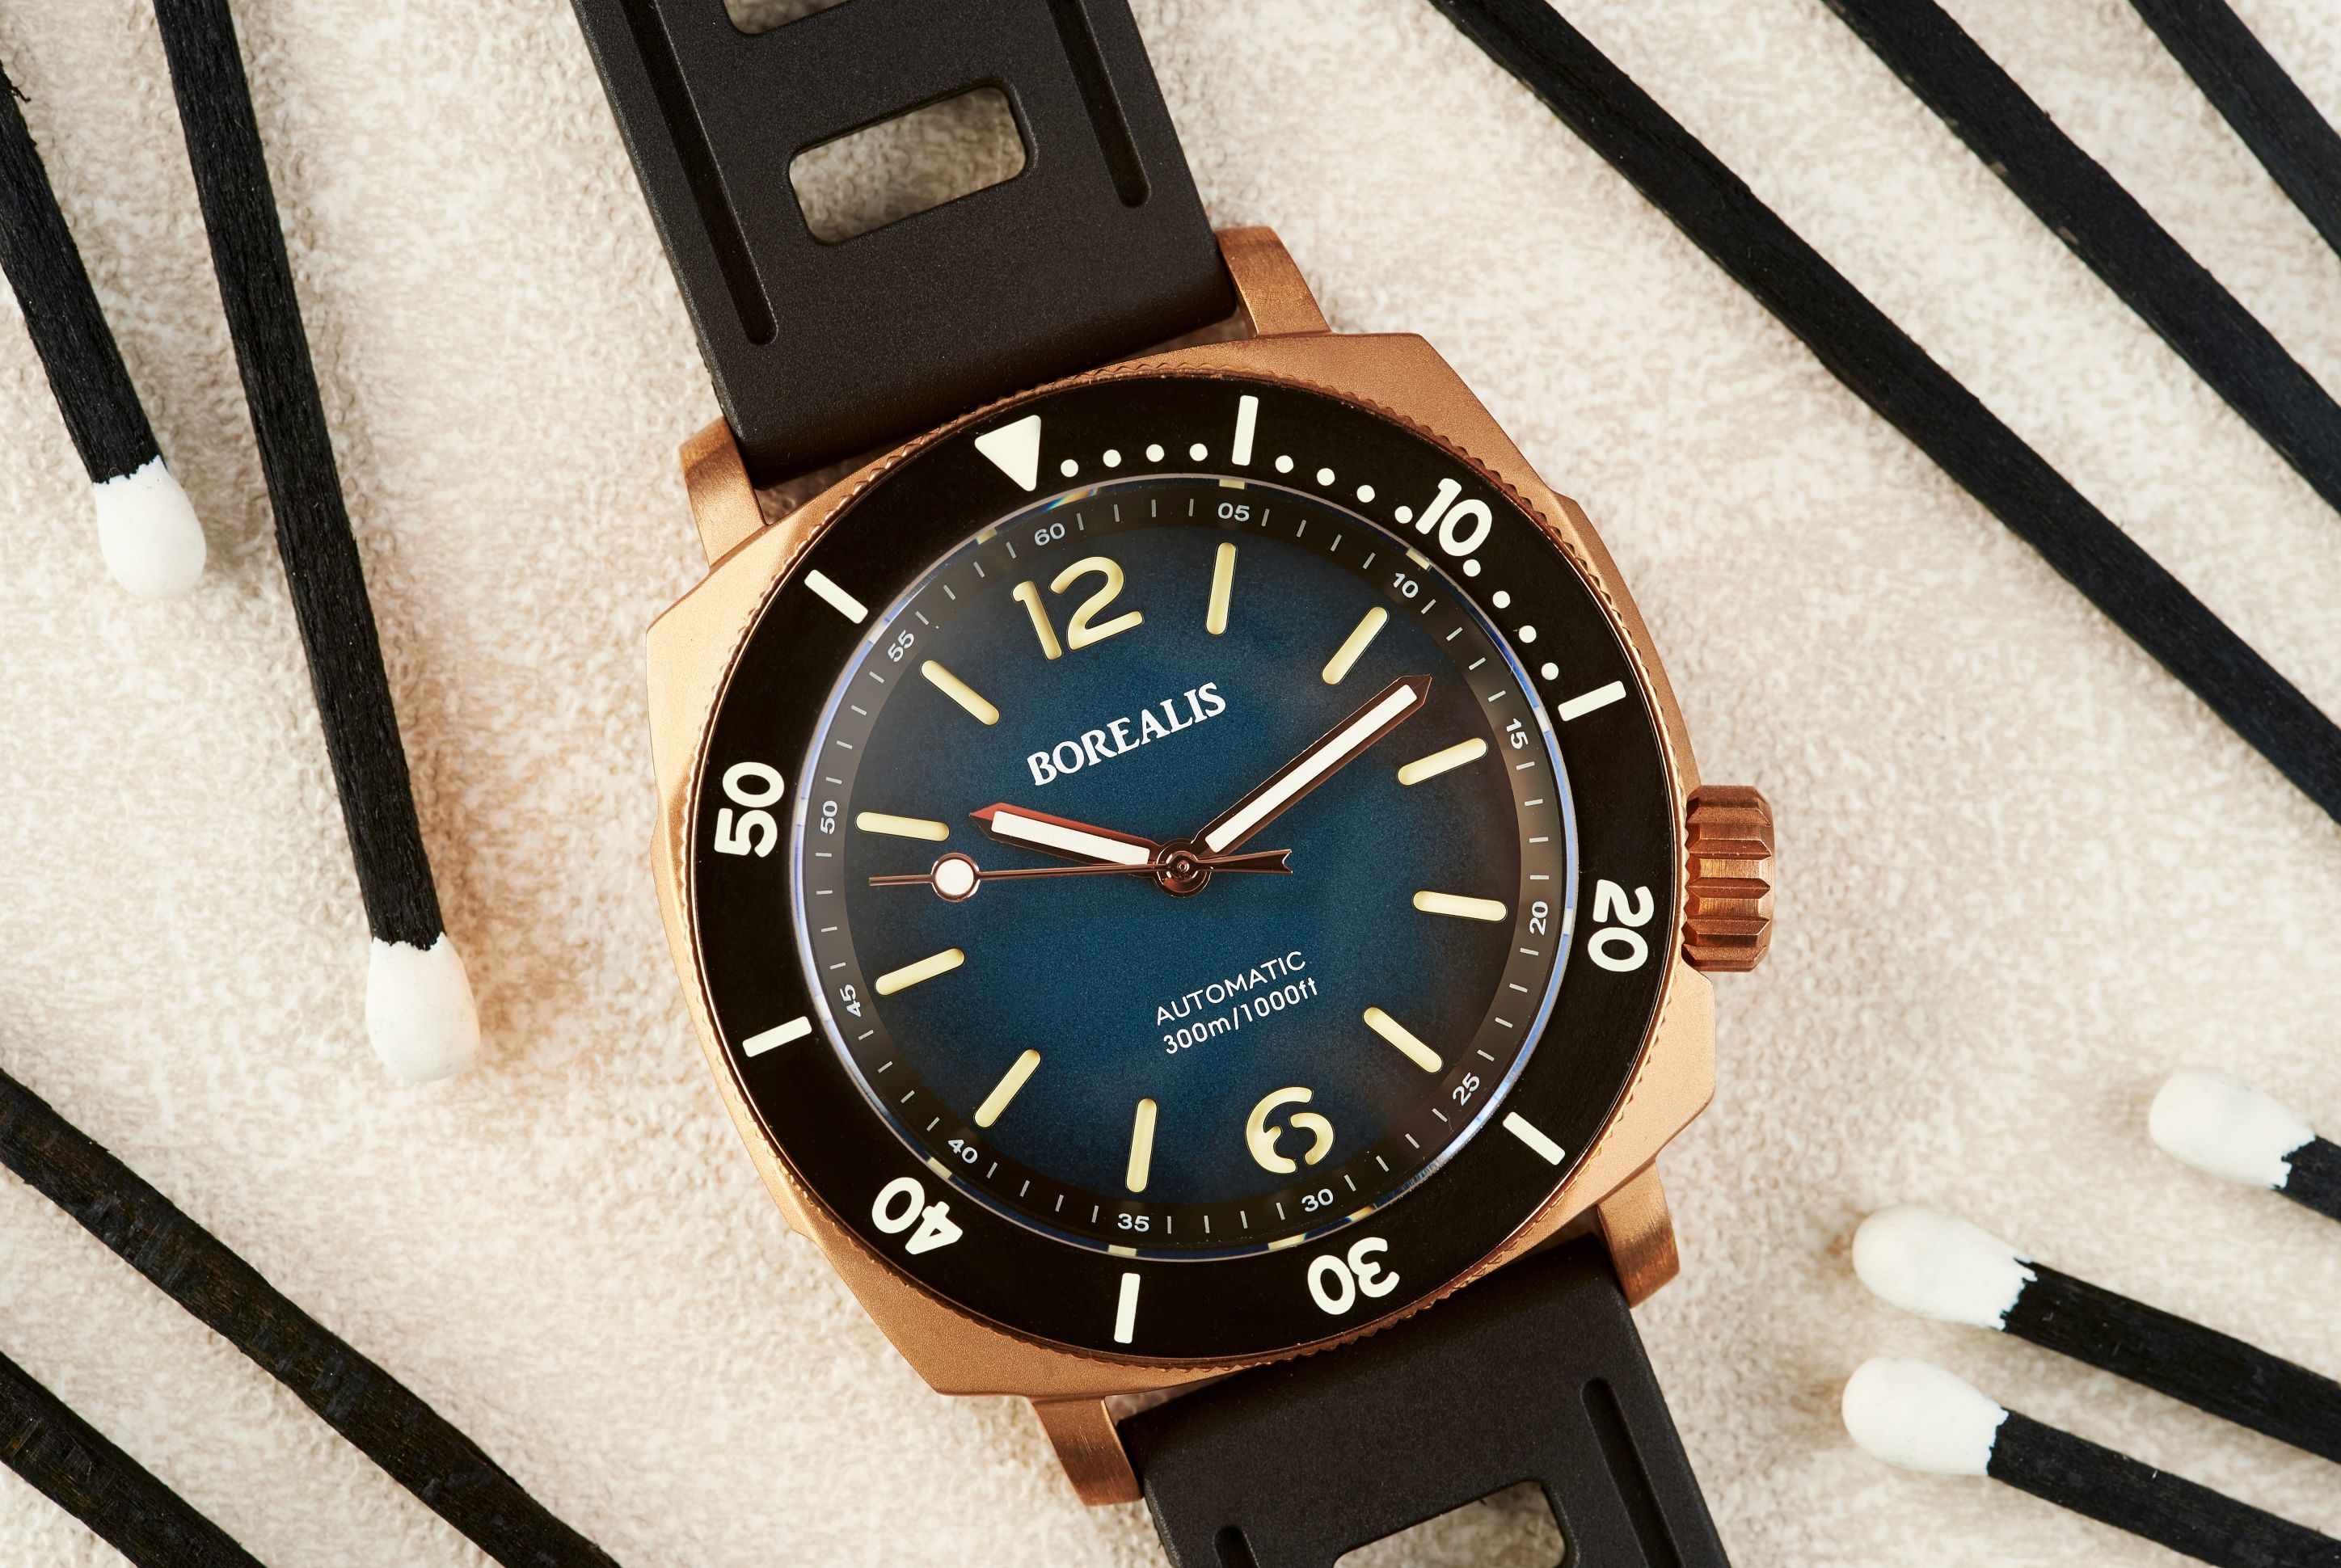 Borealis Navale CuSn8 Bronze 300m Diver Watch Miyota 9015 Blue Fumed Dial Version CR Rotating Bezel